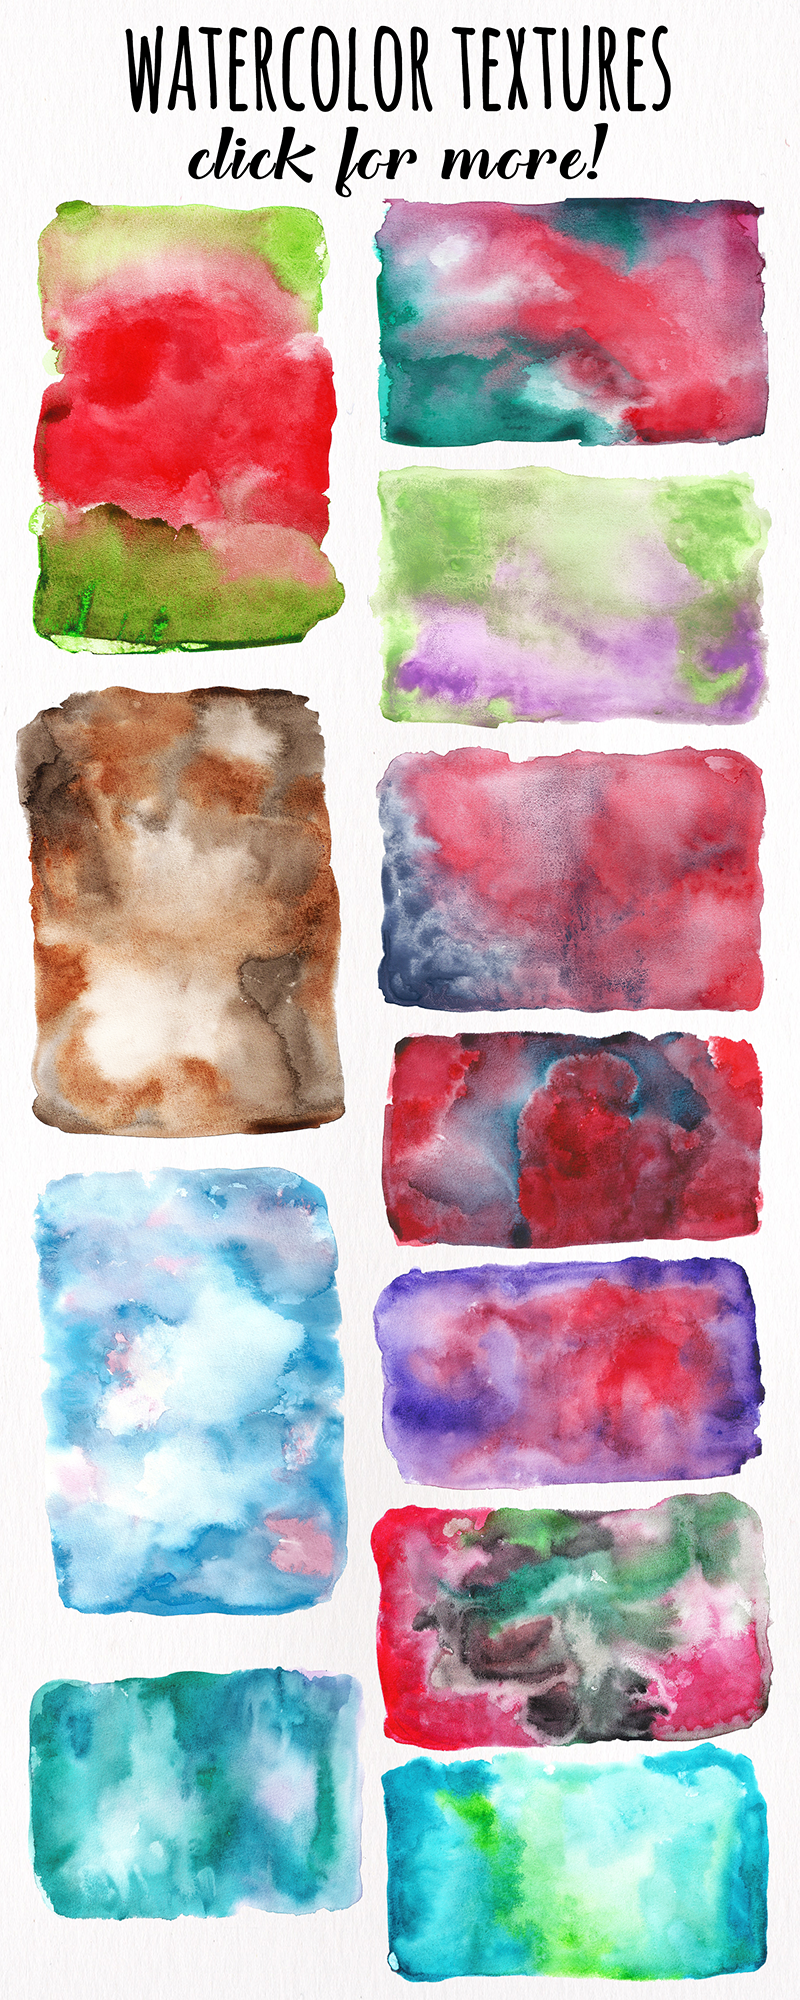 Watercolor Textures - card edition example image 18